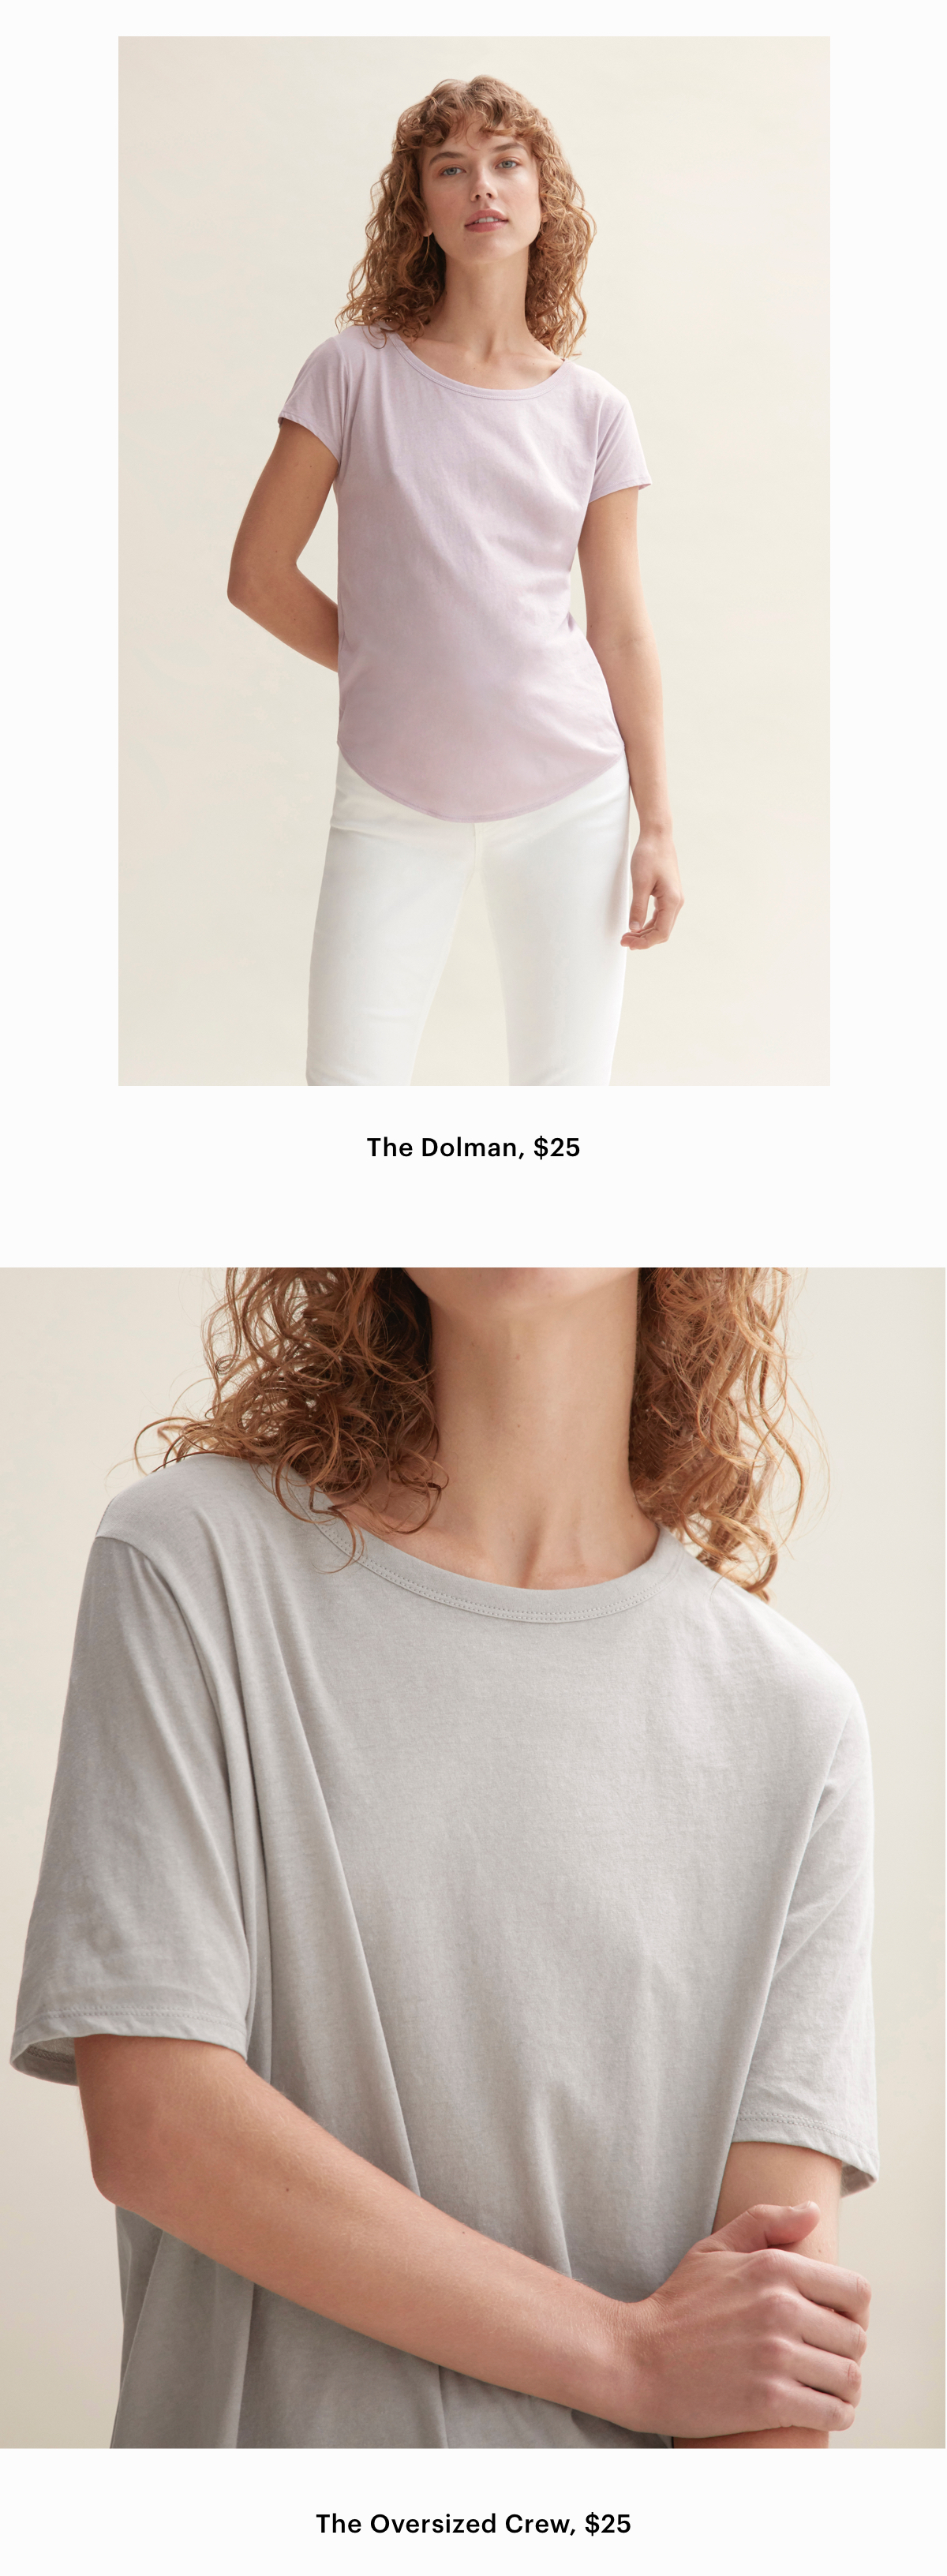 The Dolman